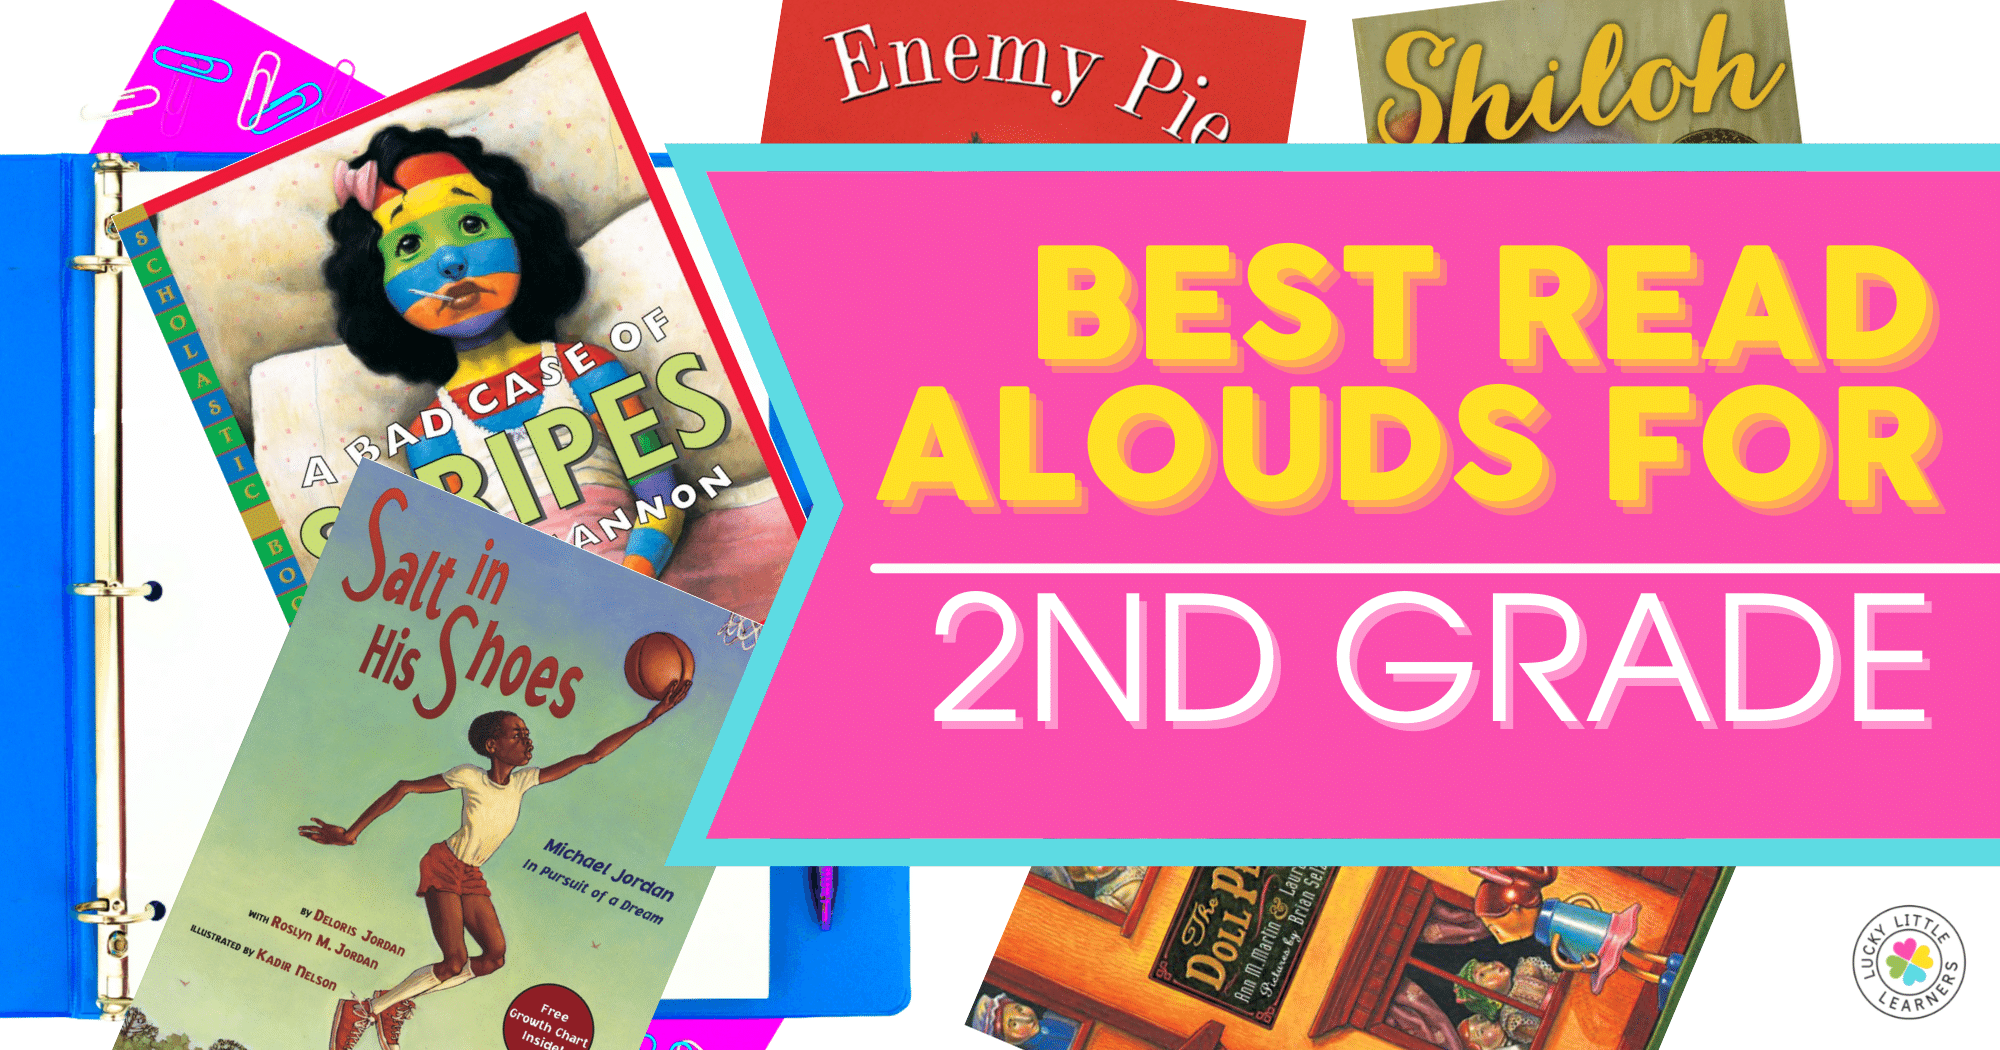 Best Read Alouds for 2nd Grade